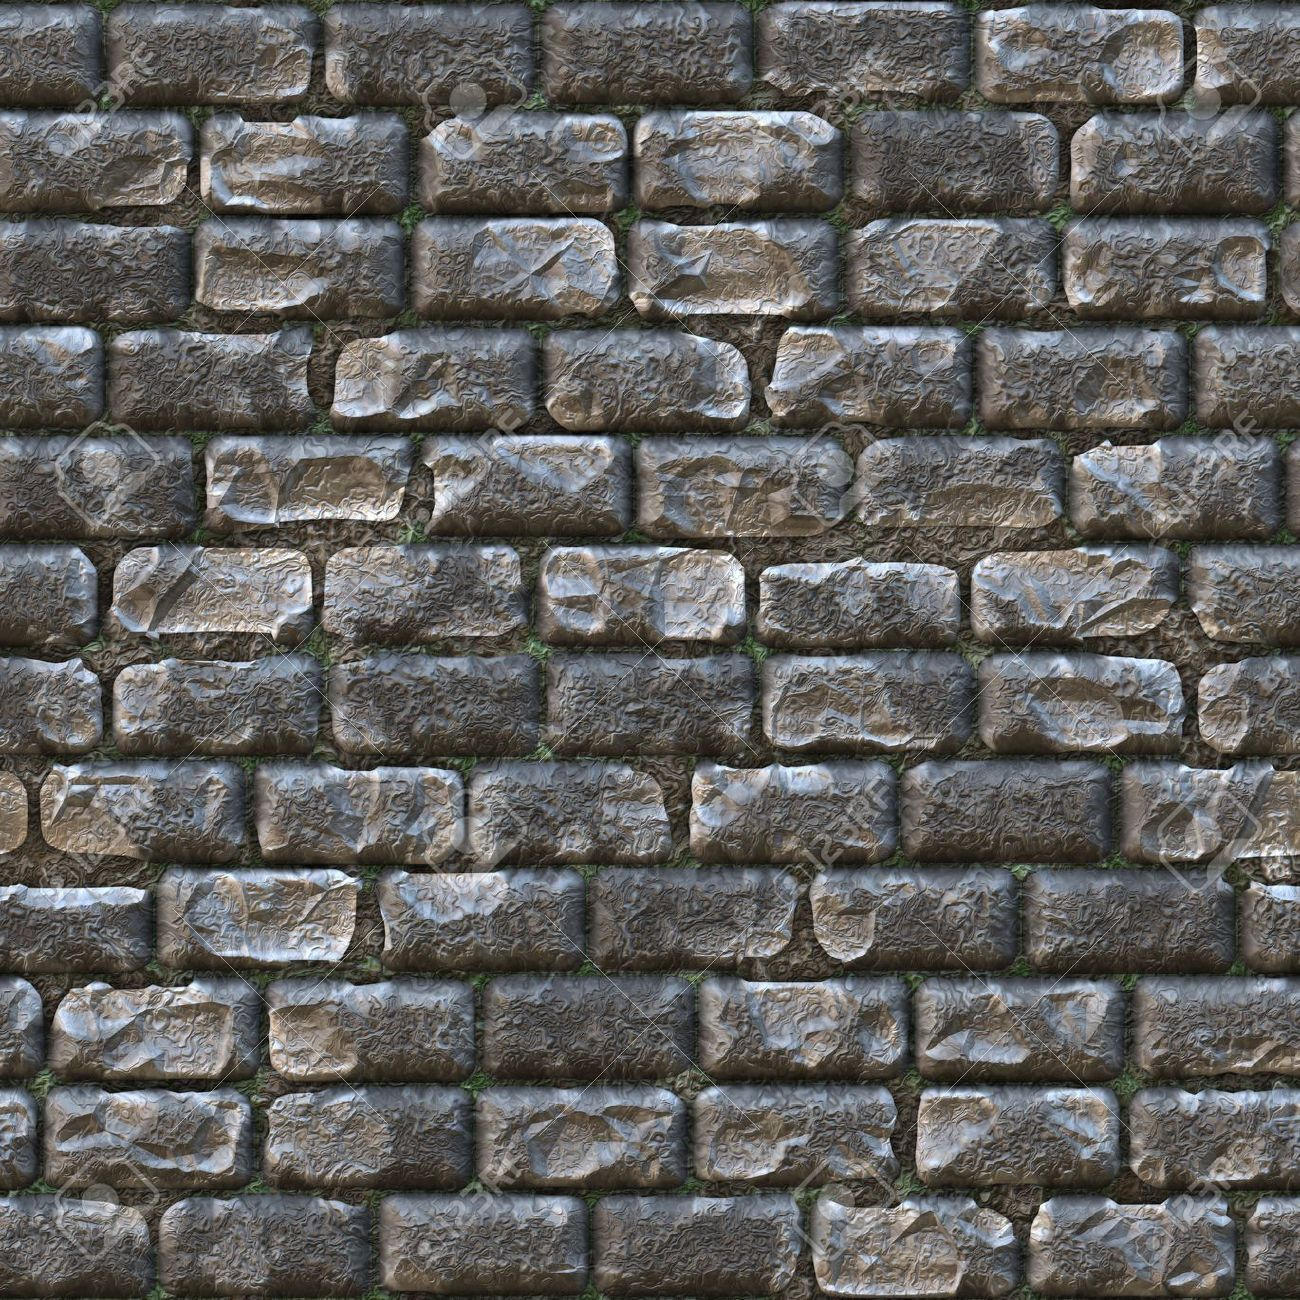 . Seamless Stone Brick Wall as Textured Background